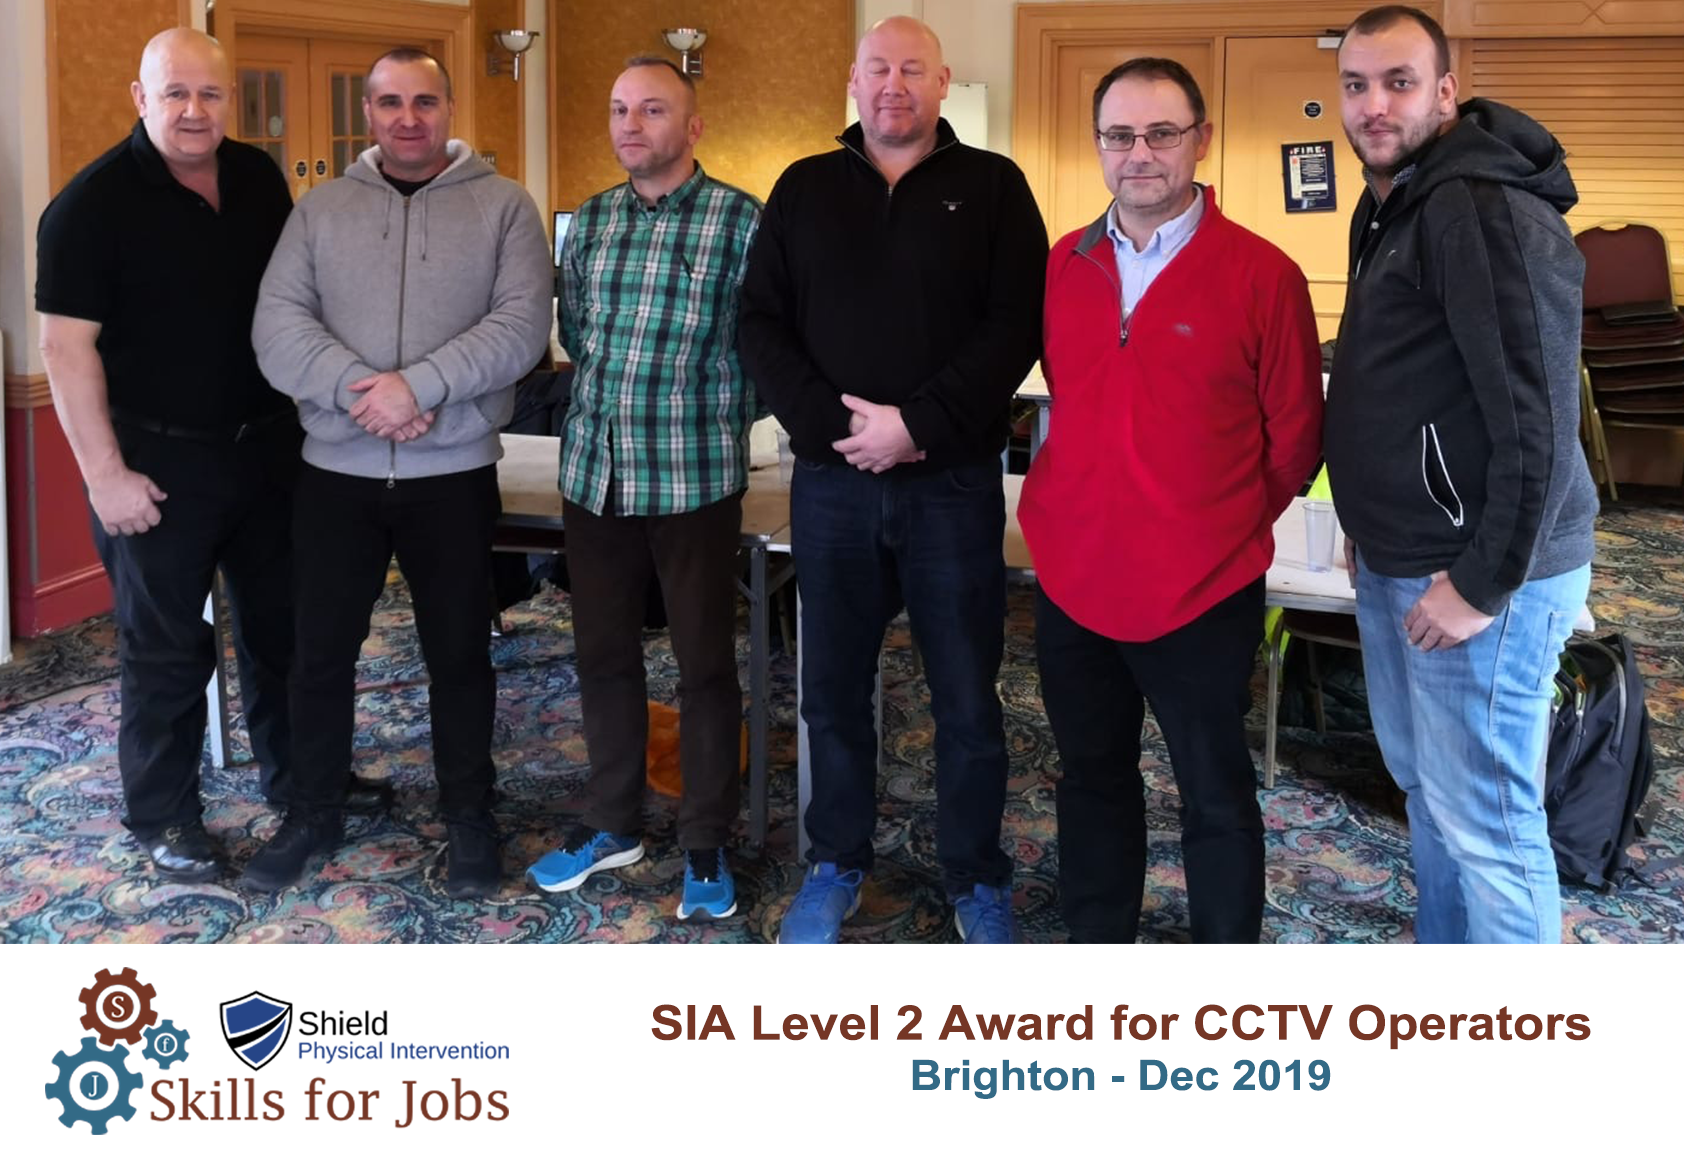 Brighton - SIA Level 2 Award for CCTV Operators - Dec 2019